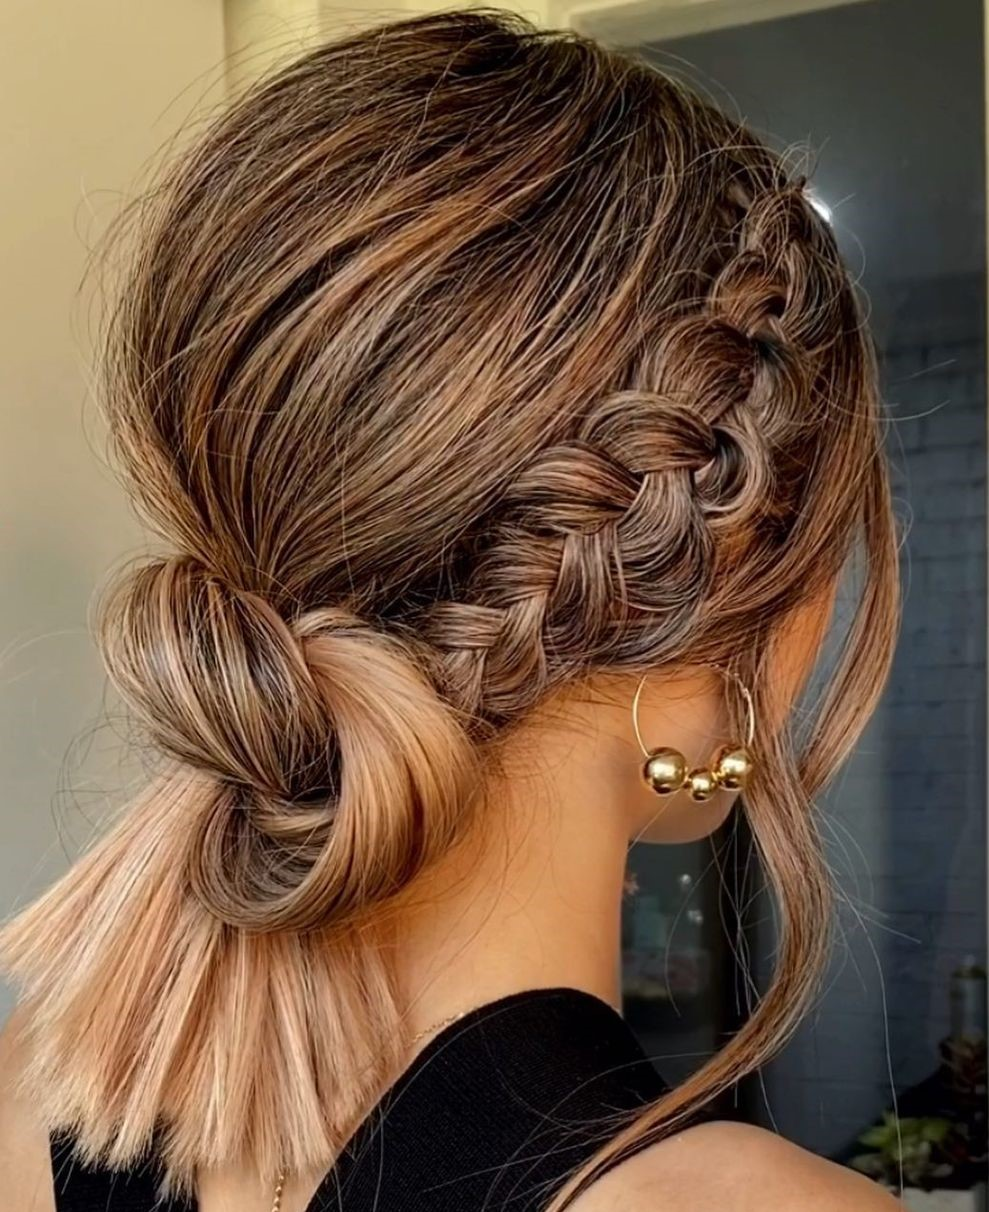 Cute Braid and Knot Updo